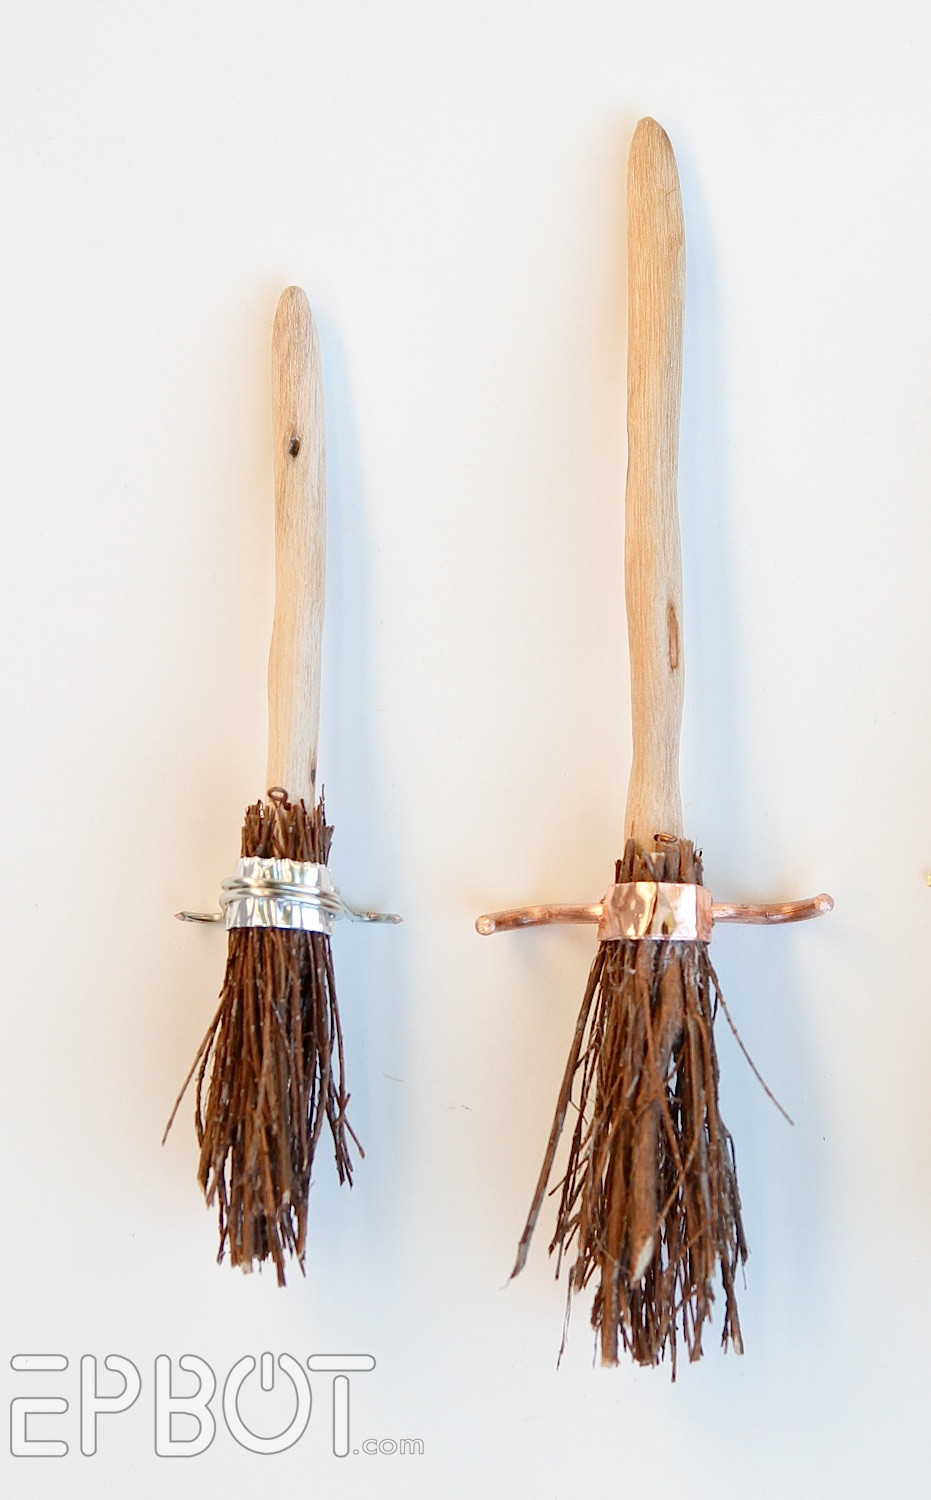 Best ideas about DIY Harry Potter Broom . Save or Pin EPBOT DIY Harry Potter Quidditch Broom Ornaments Now.